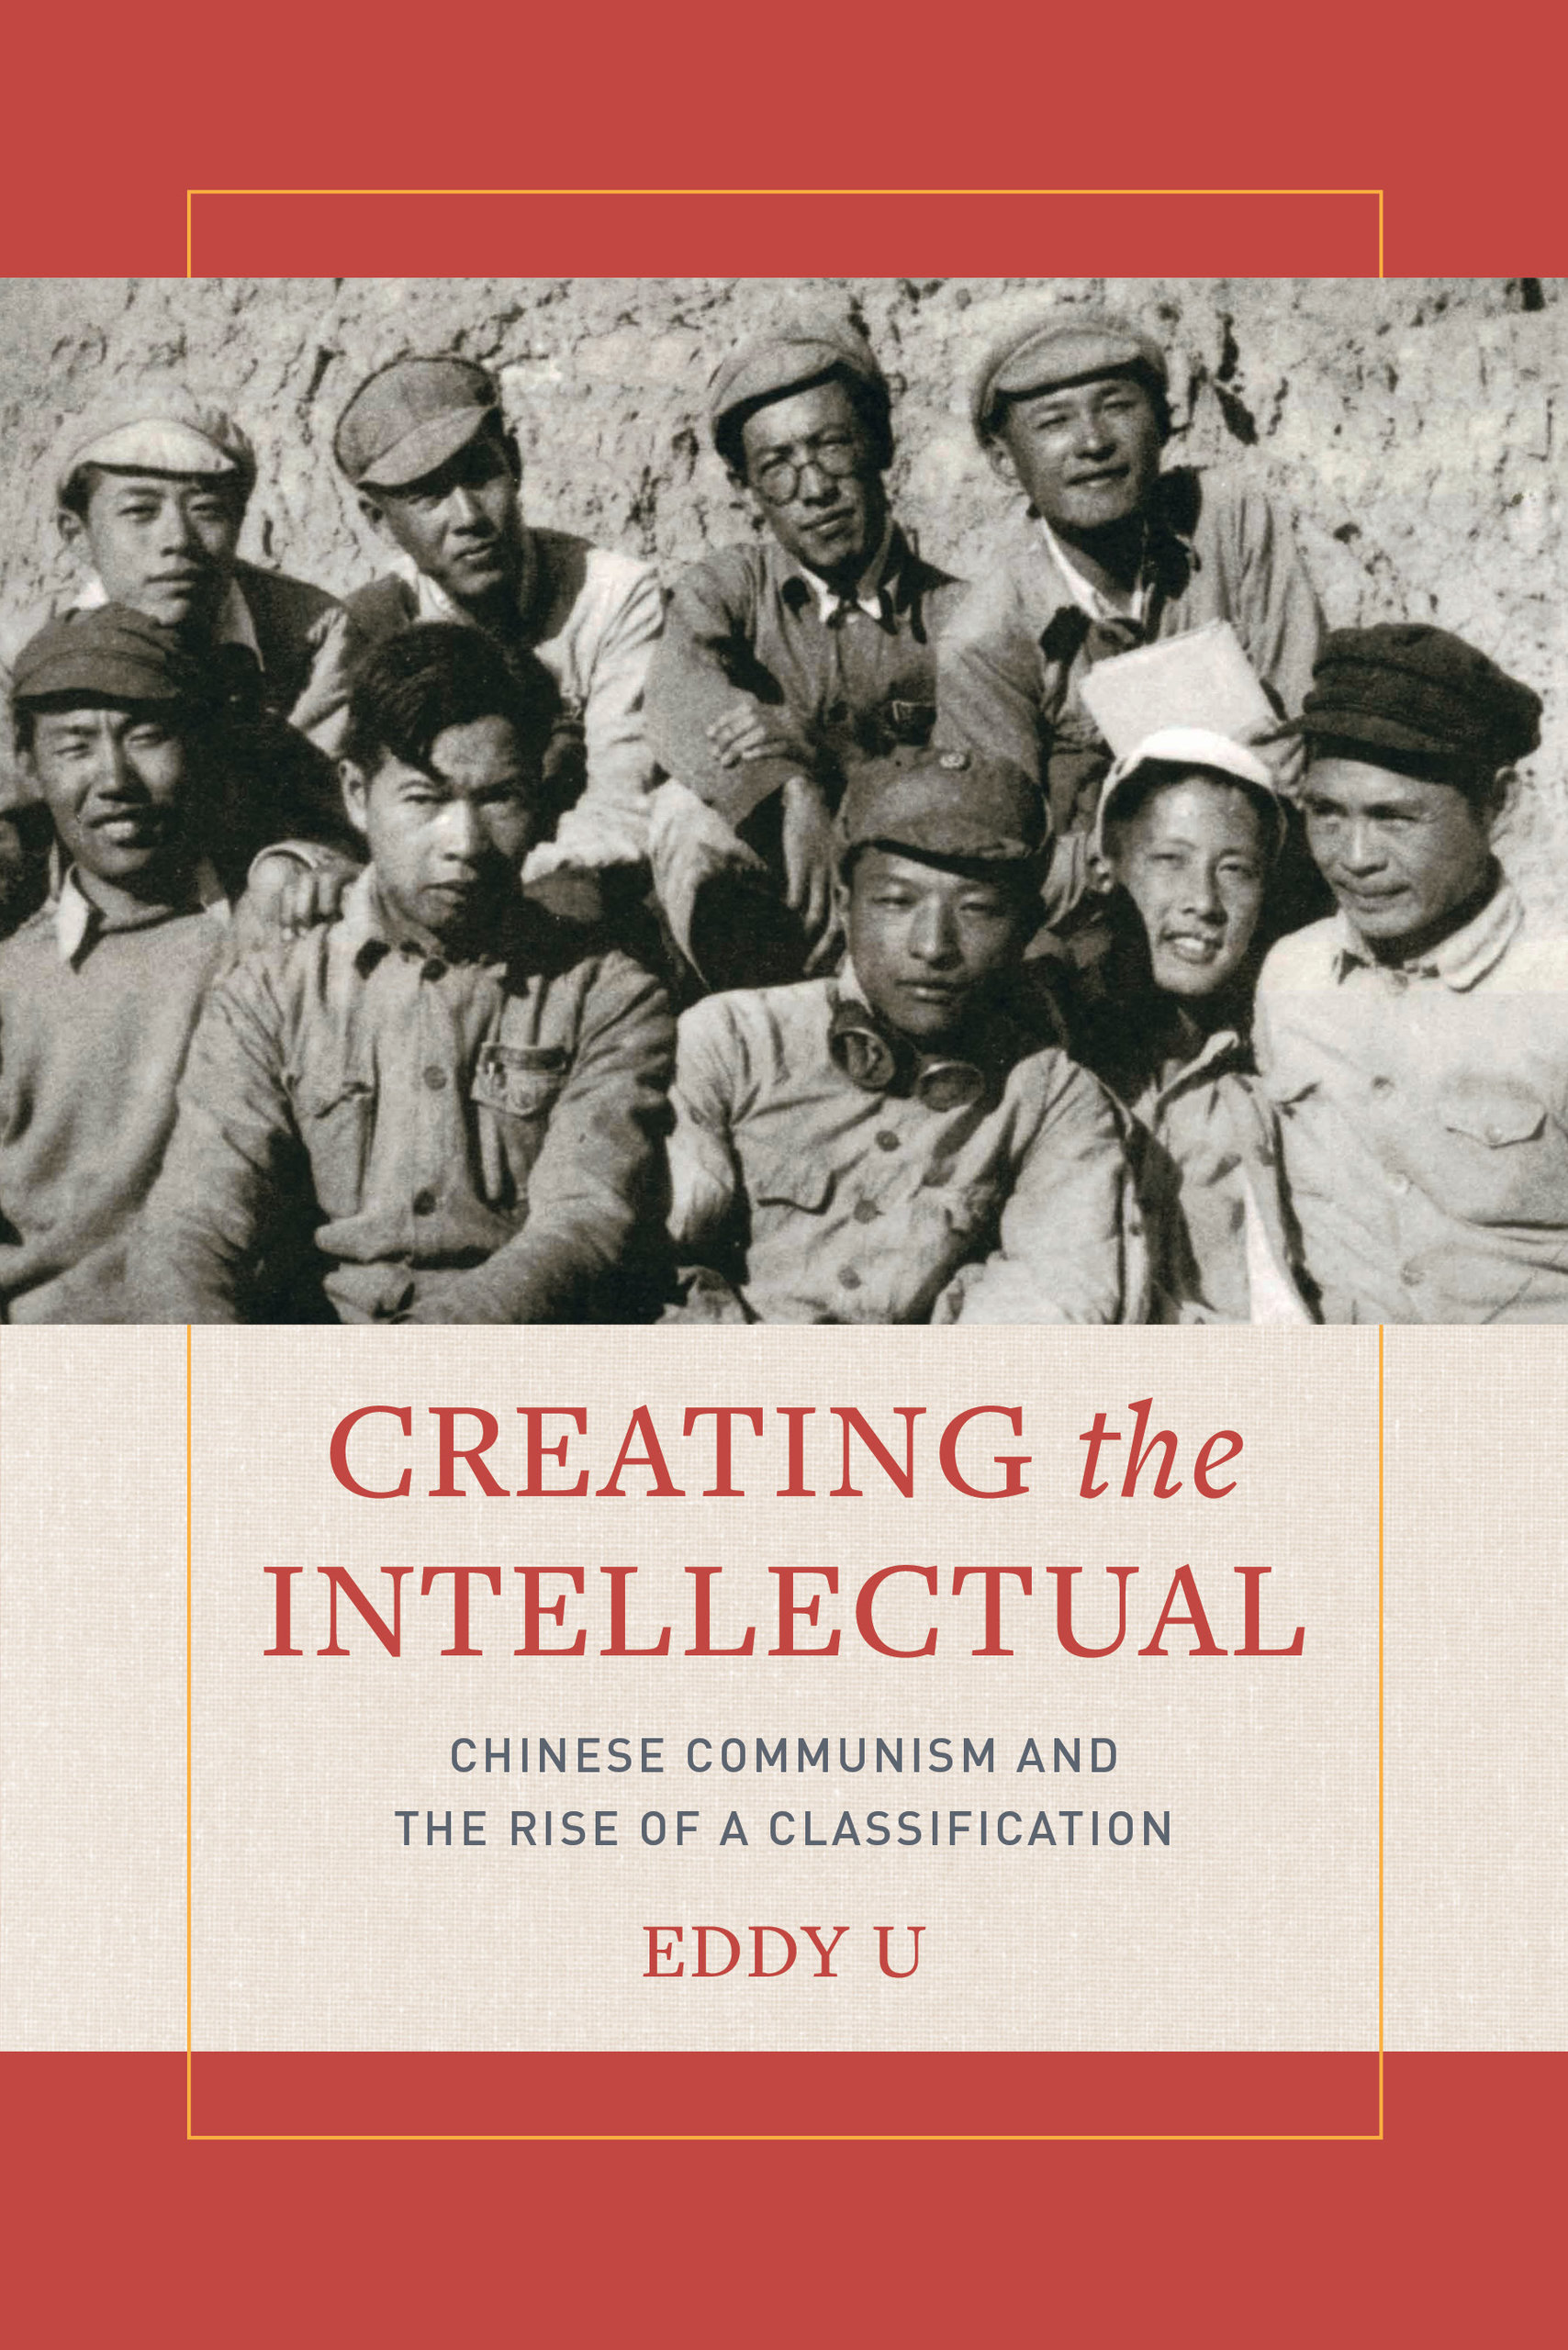 Cover of book with title Creating the Intellectual and image of nine men in China